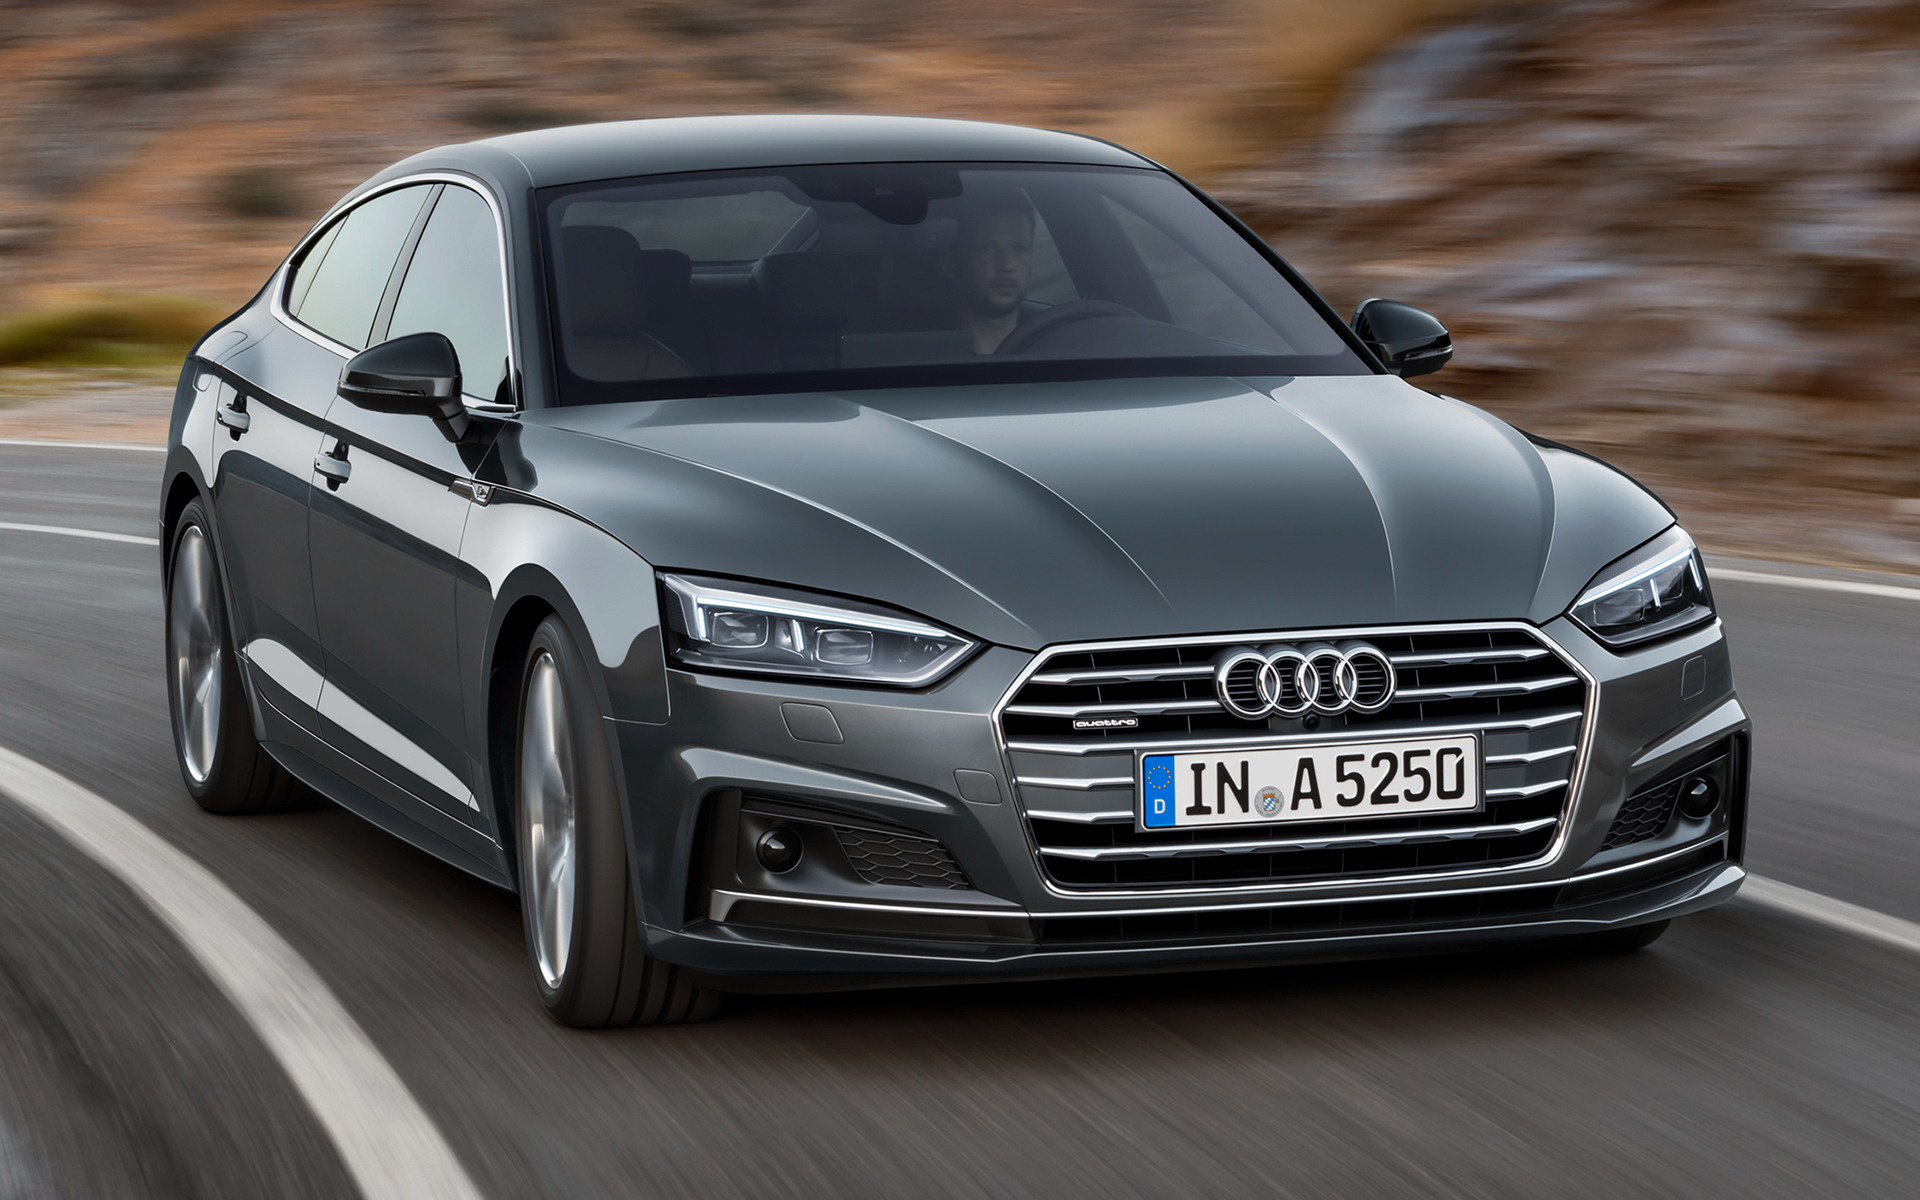 Audi A5 Sportback S line (2016) Wallpapers and HD Images - Car Pixel